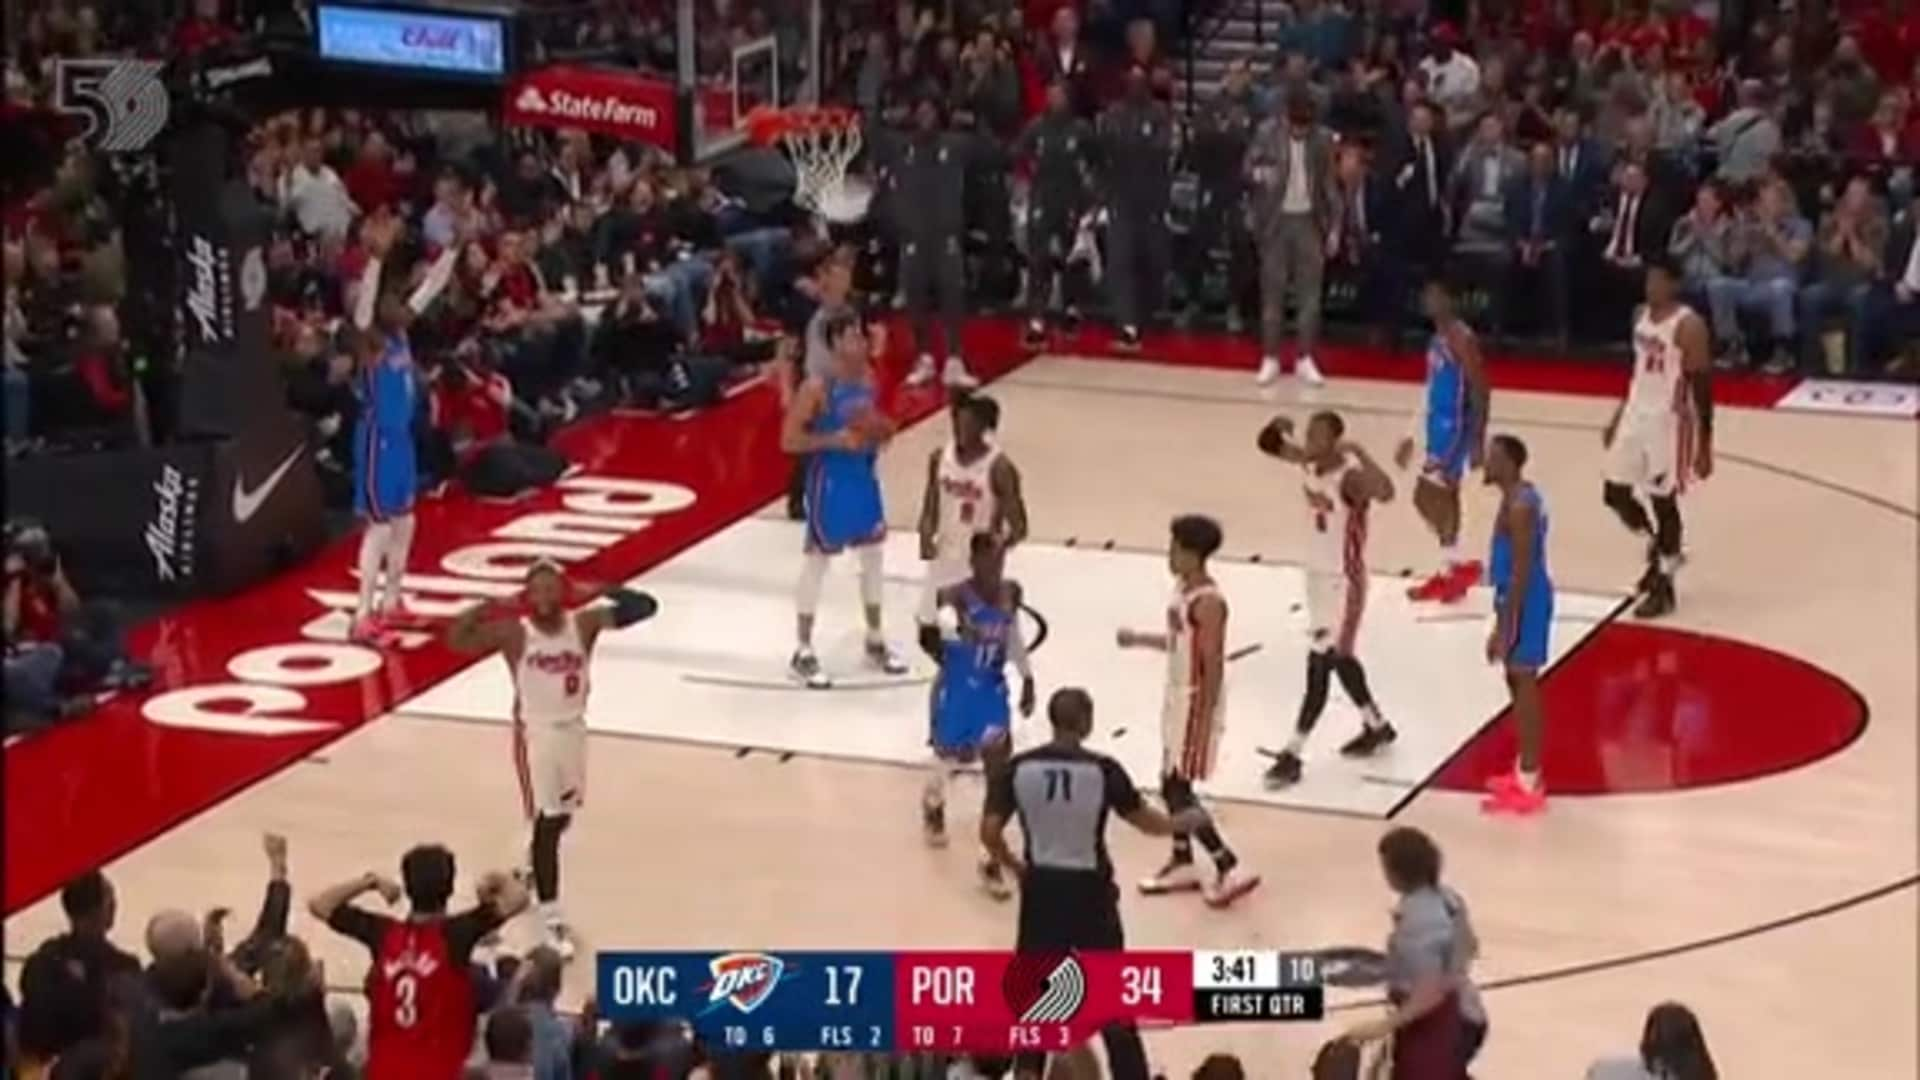 Lillard finishes through contact for the and-1